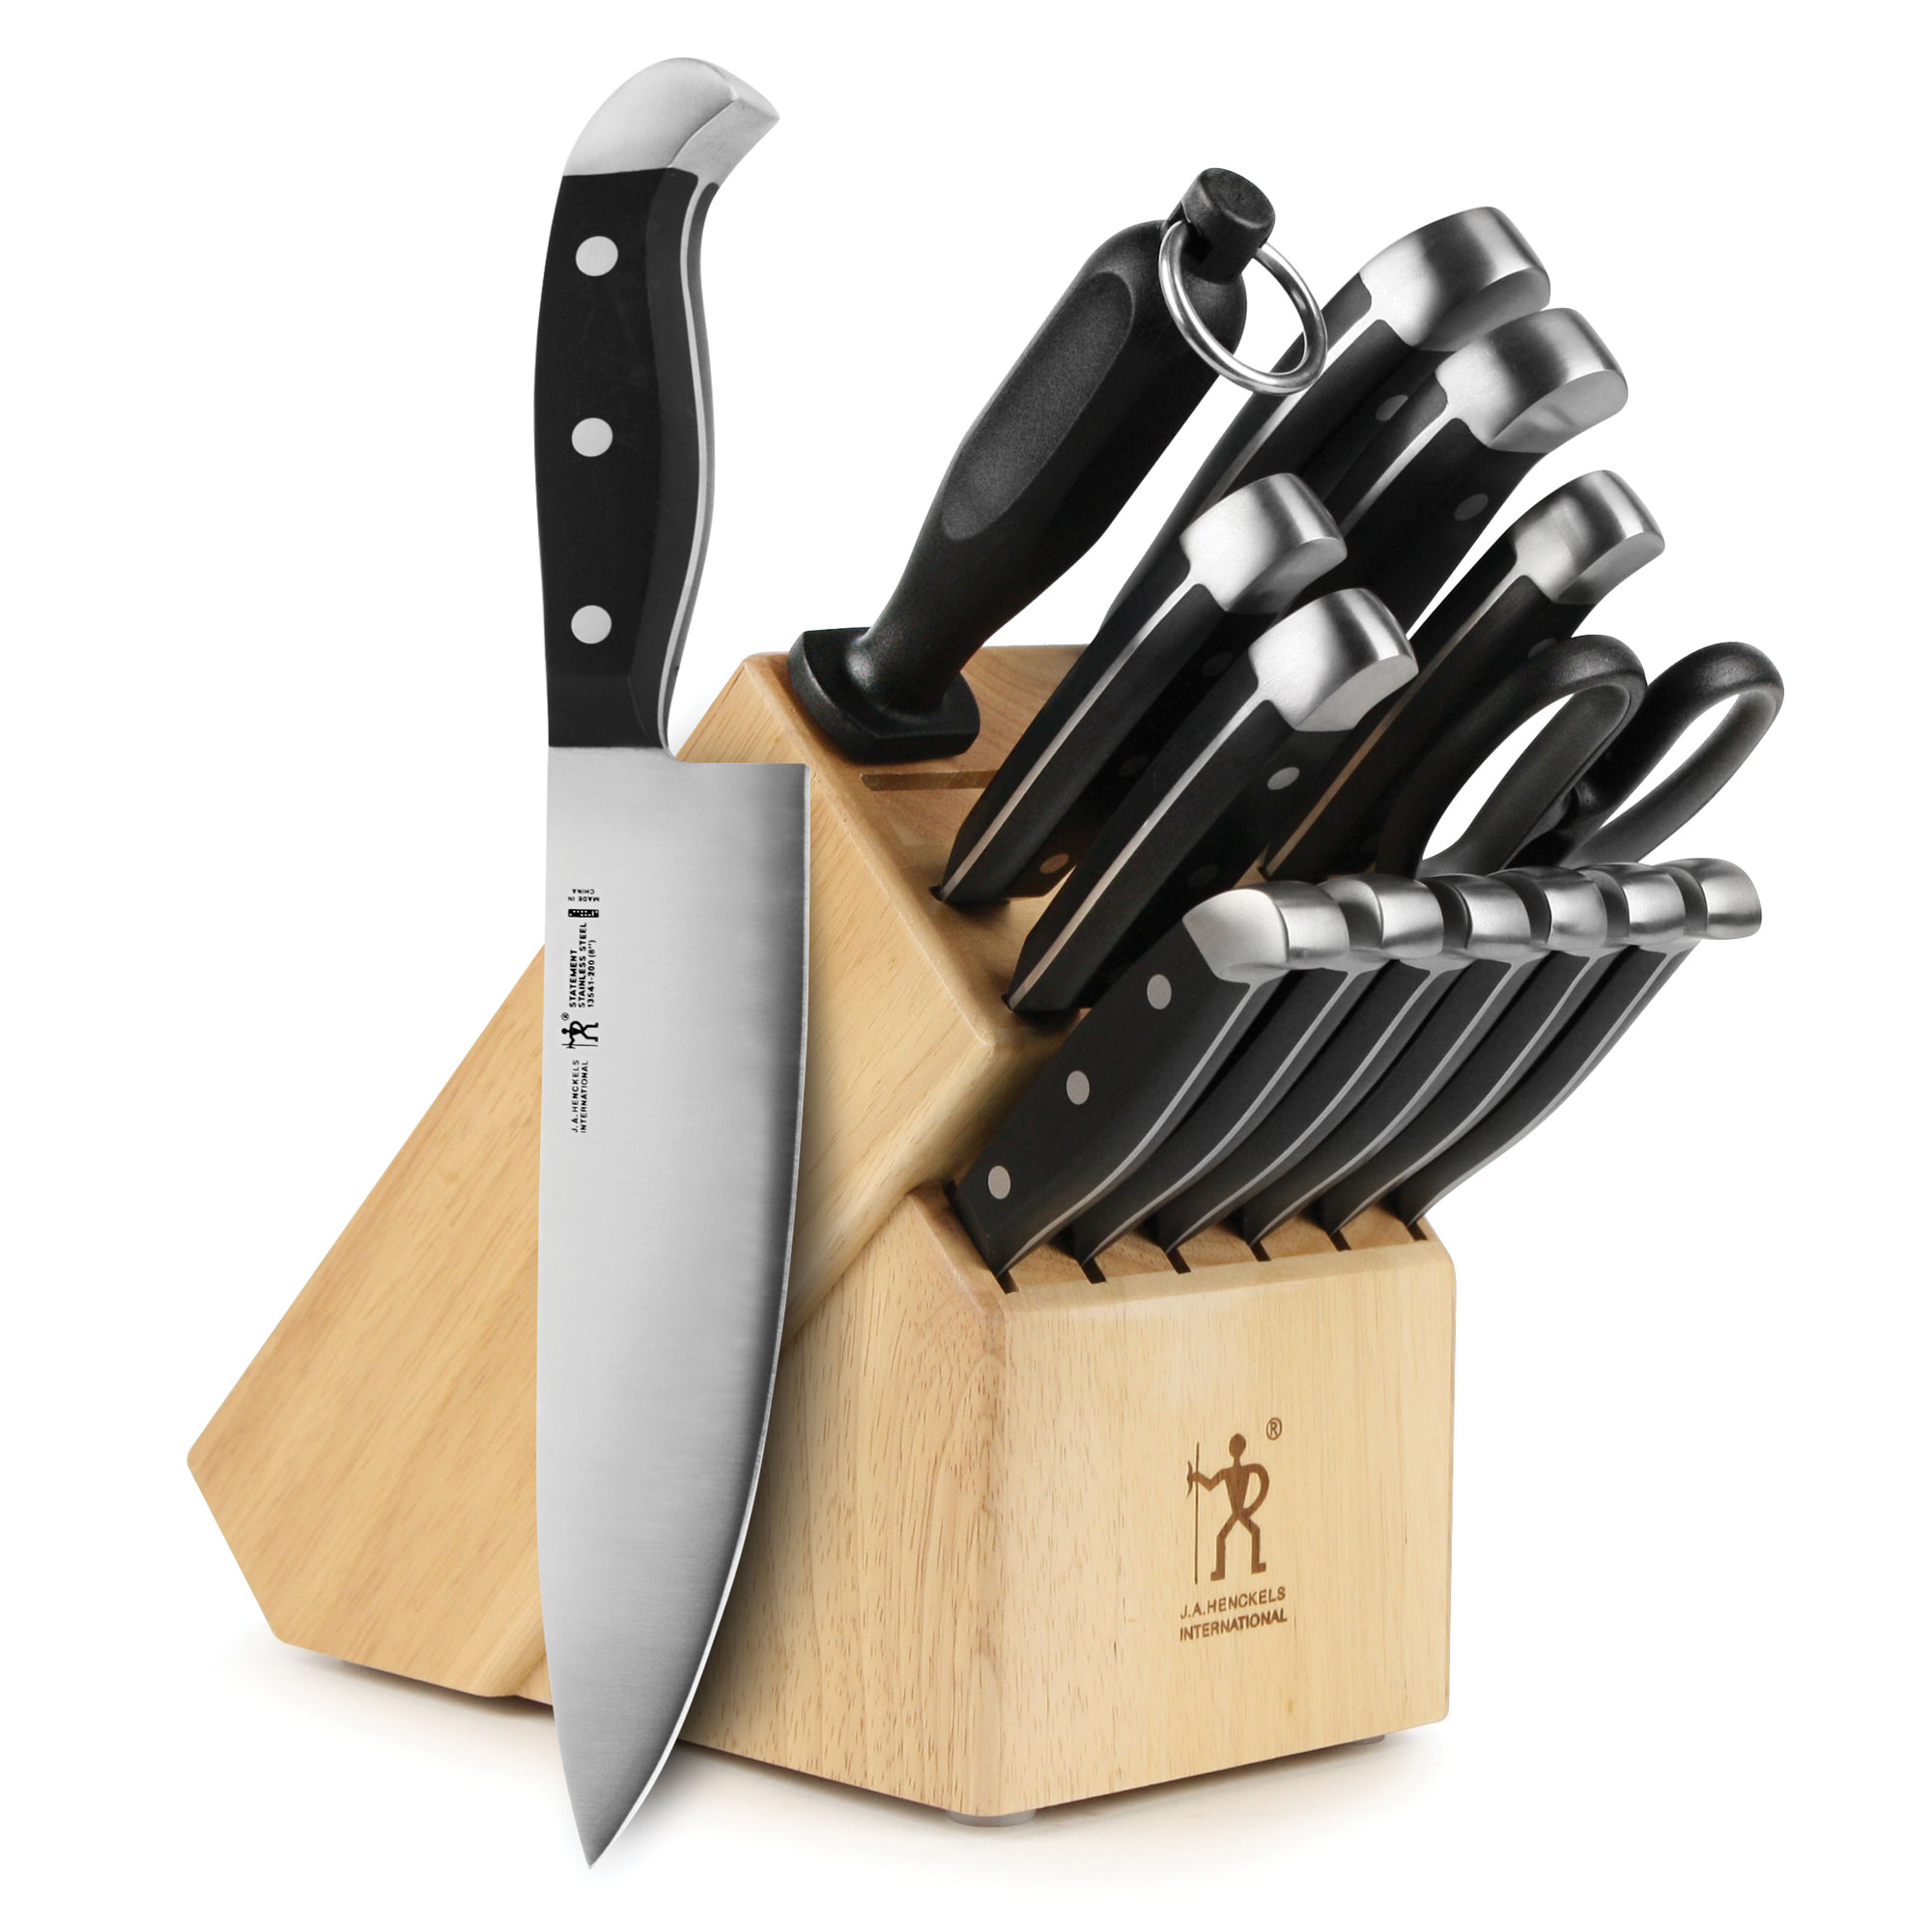 J A Henckels Statement Knife Block Set 15 Piece Cutlery